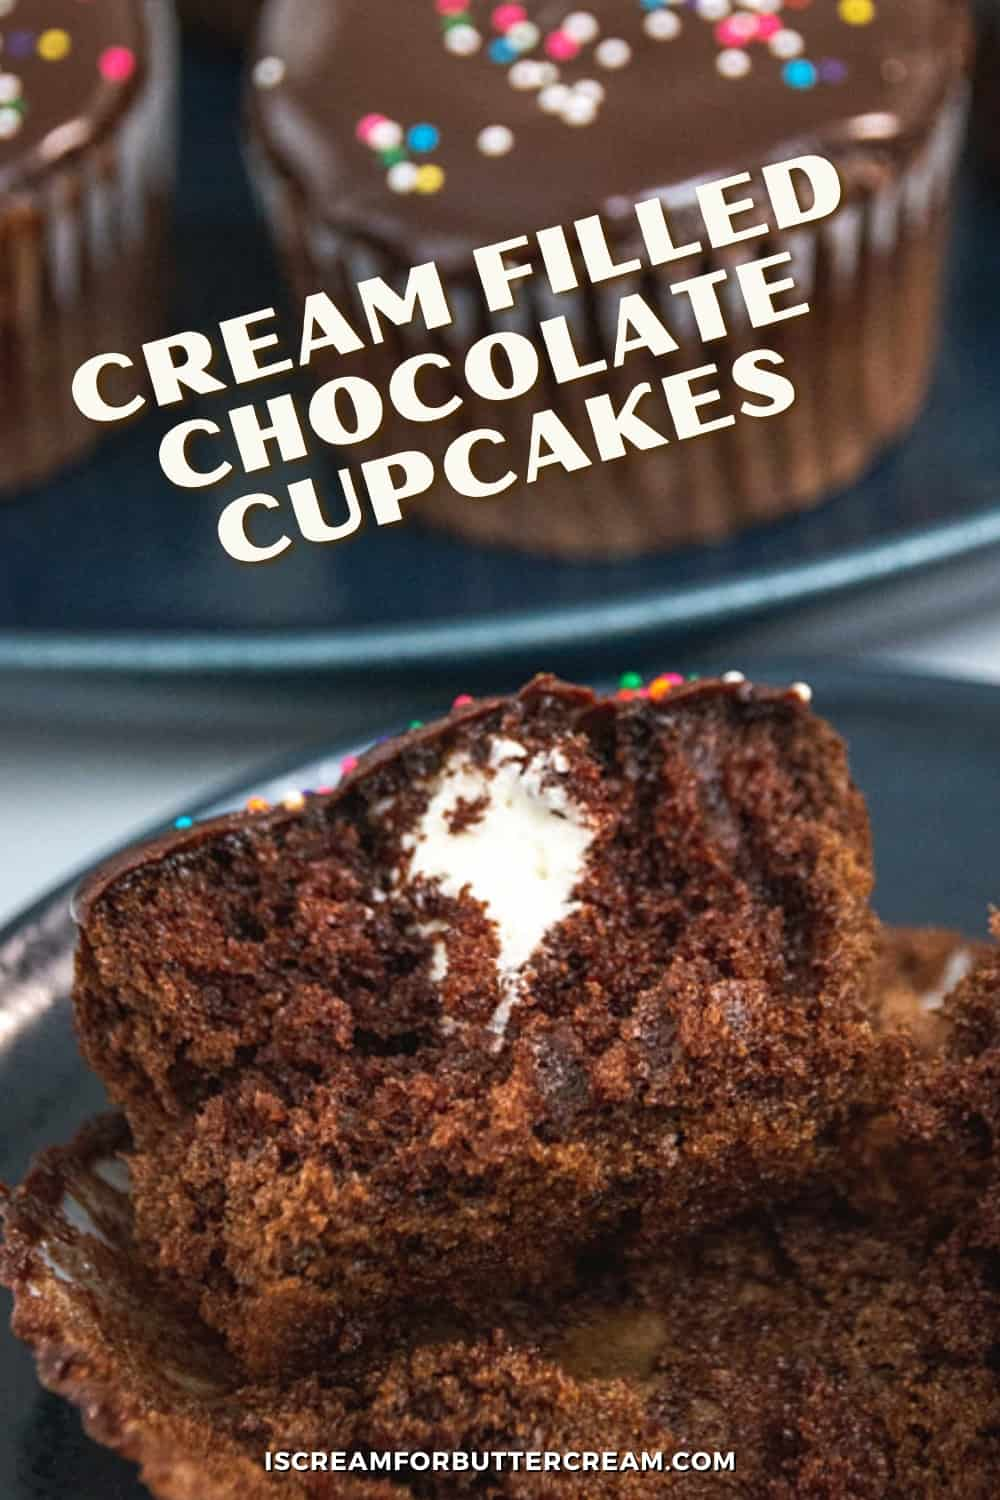 chocolate cupcakes with cream filling pin graphic